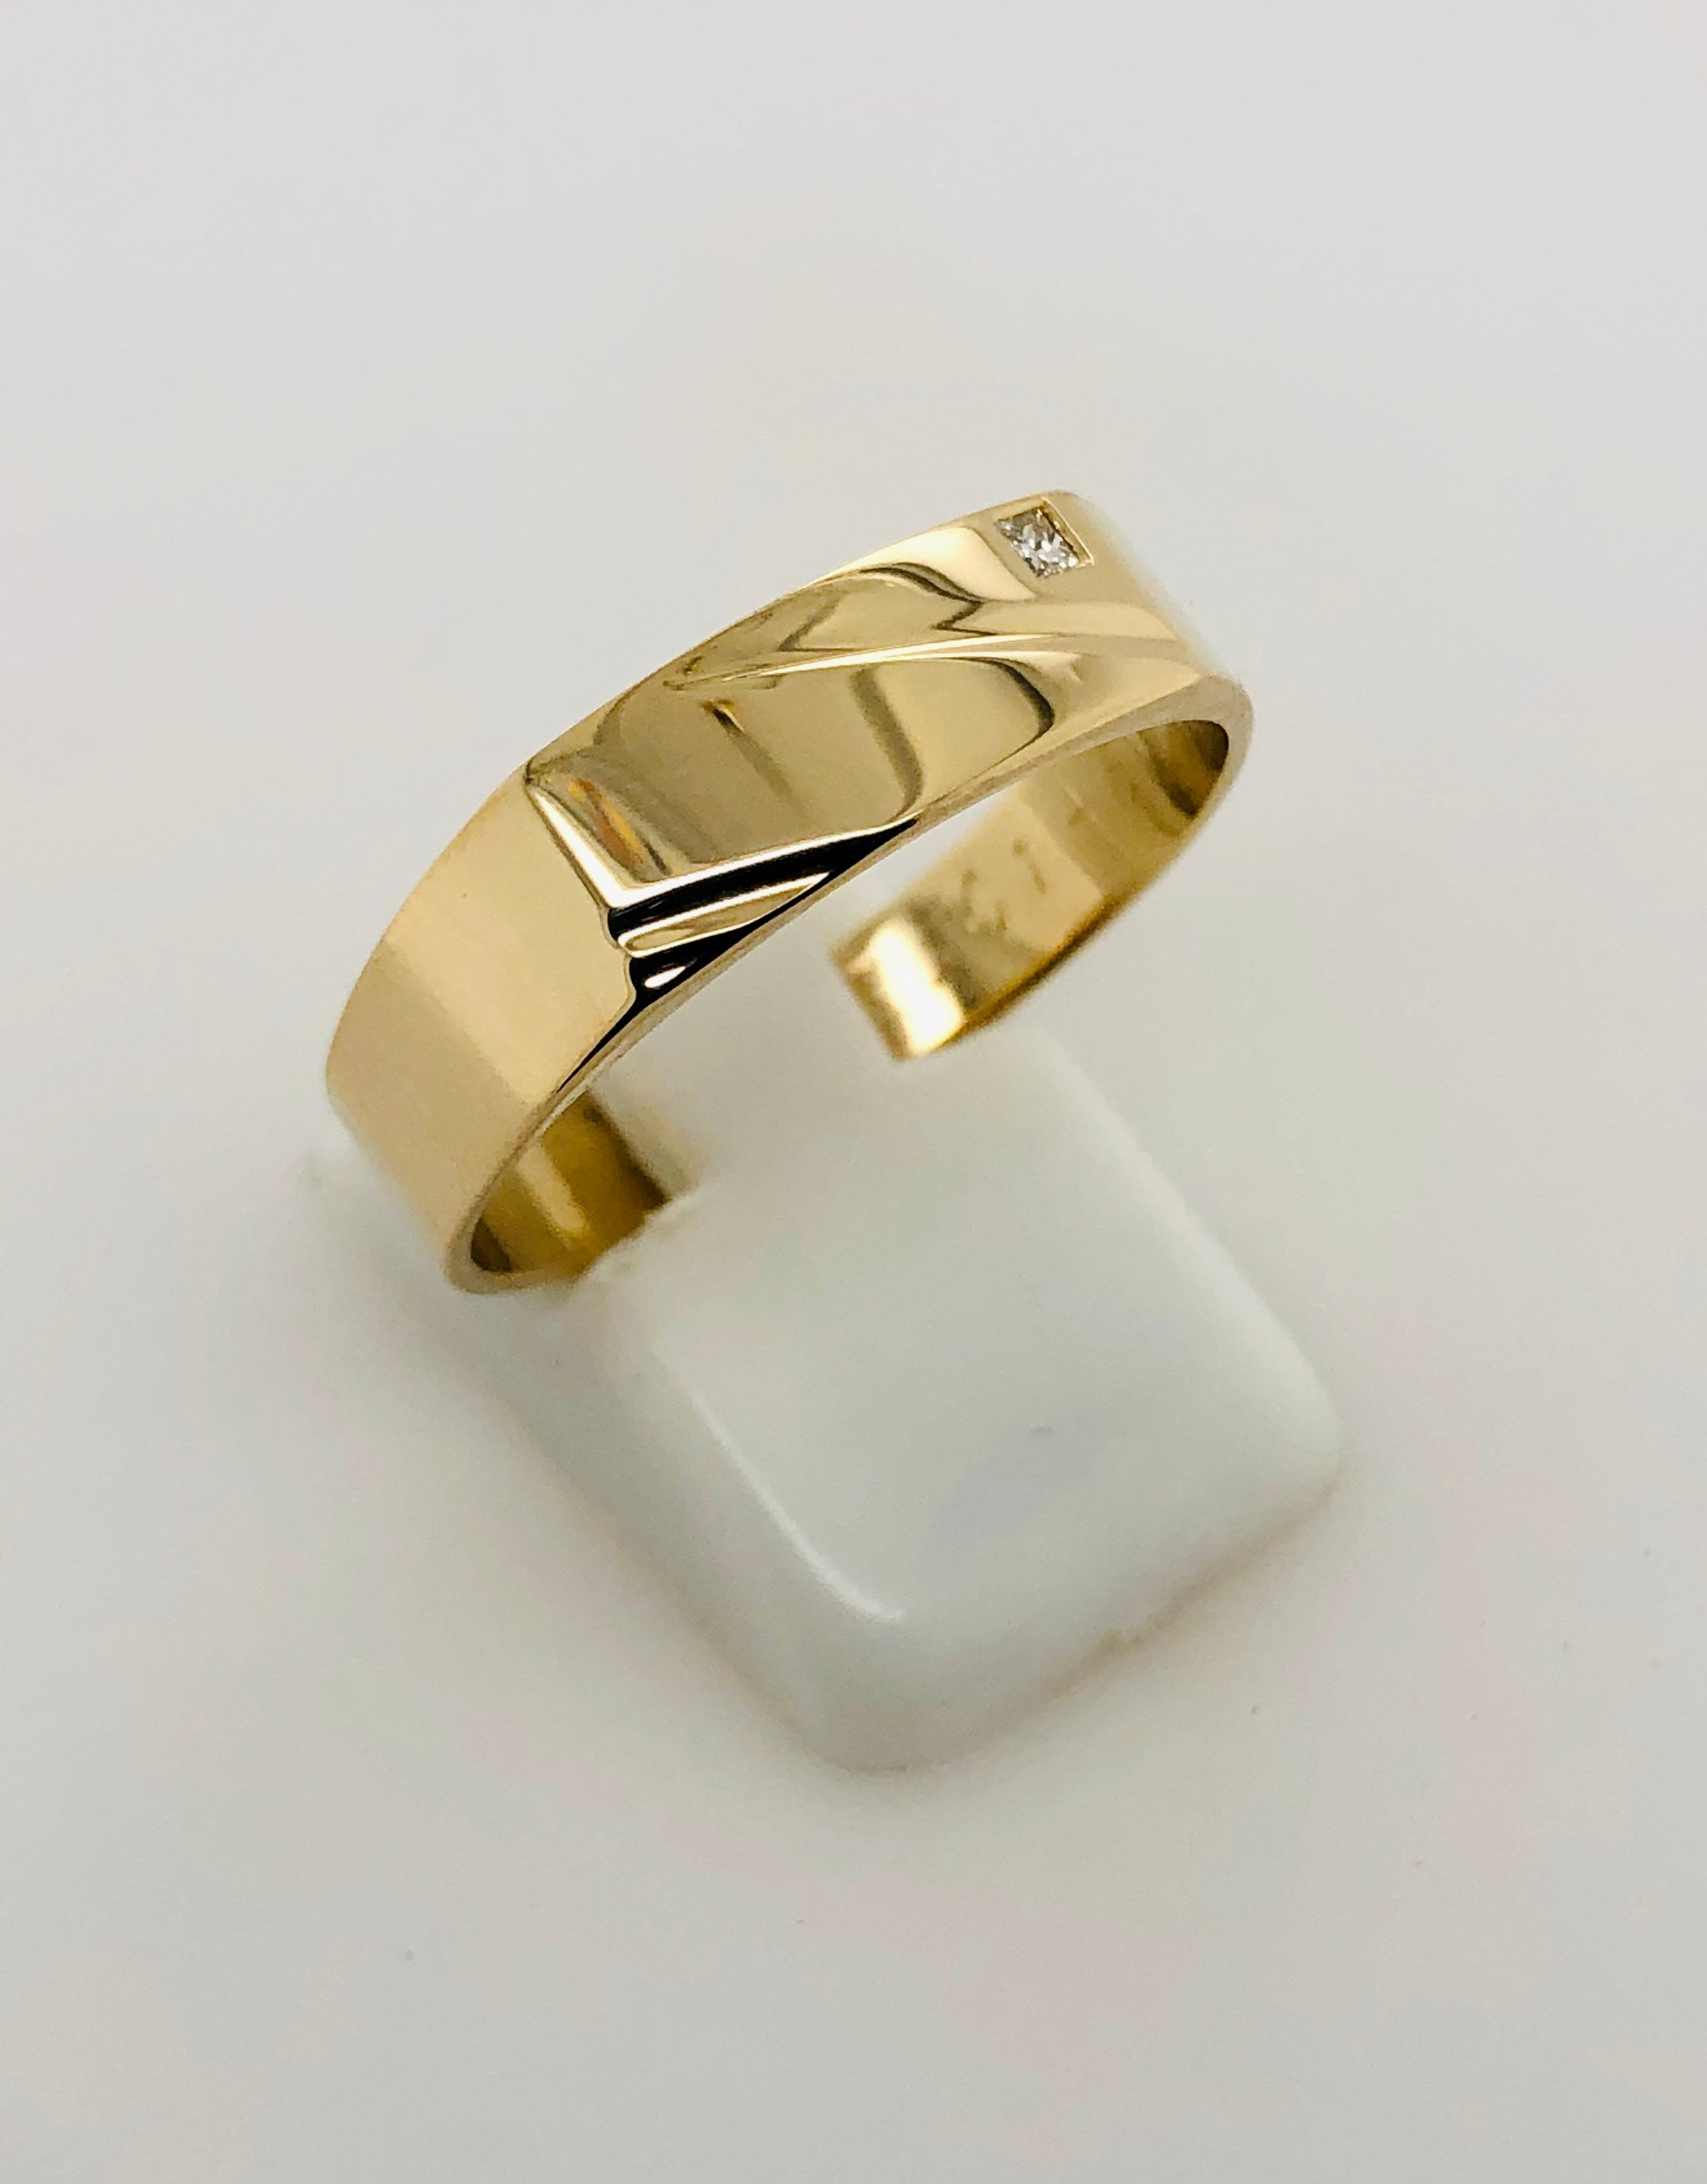 9ct Gold Gents Ring 020